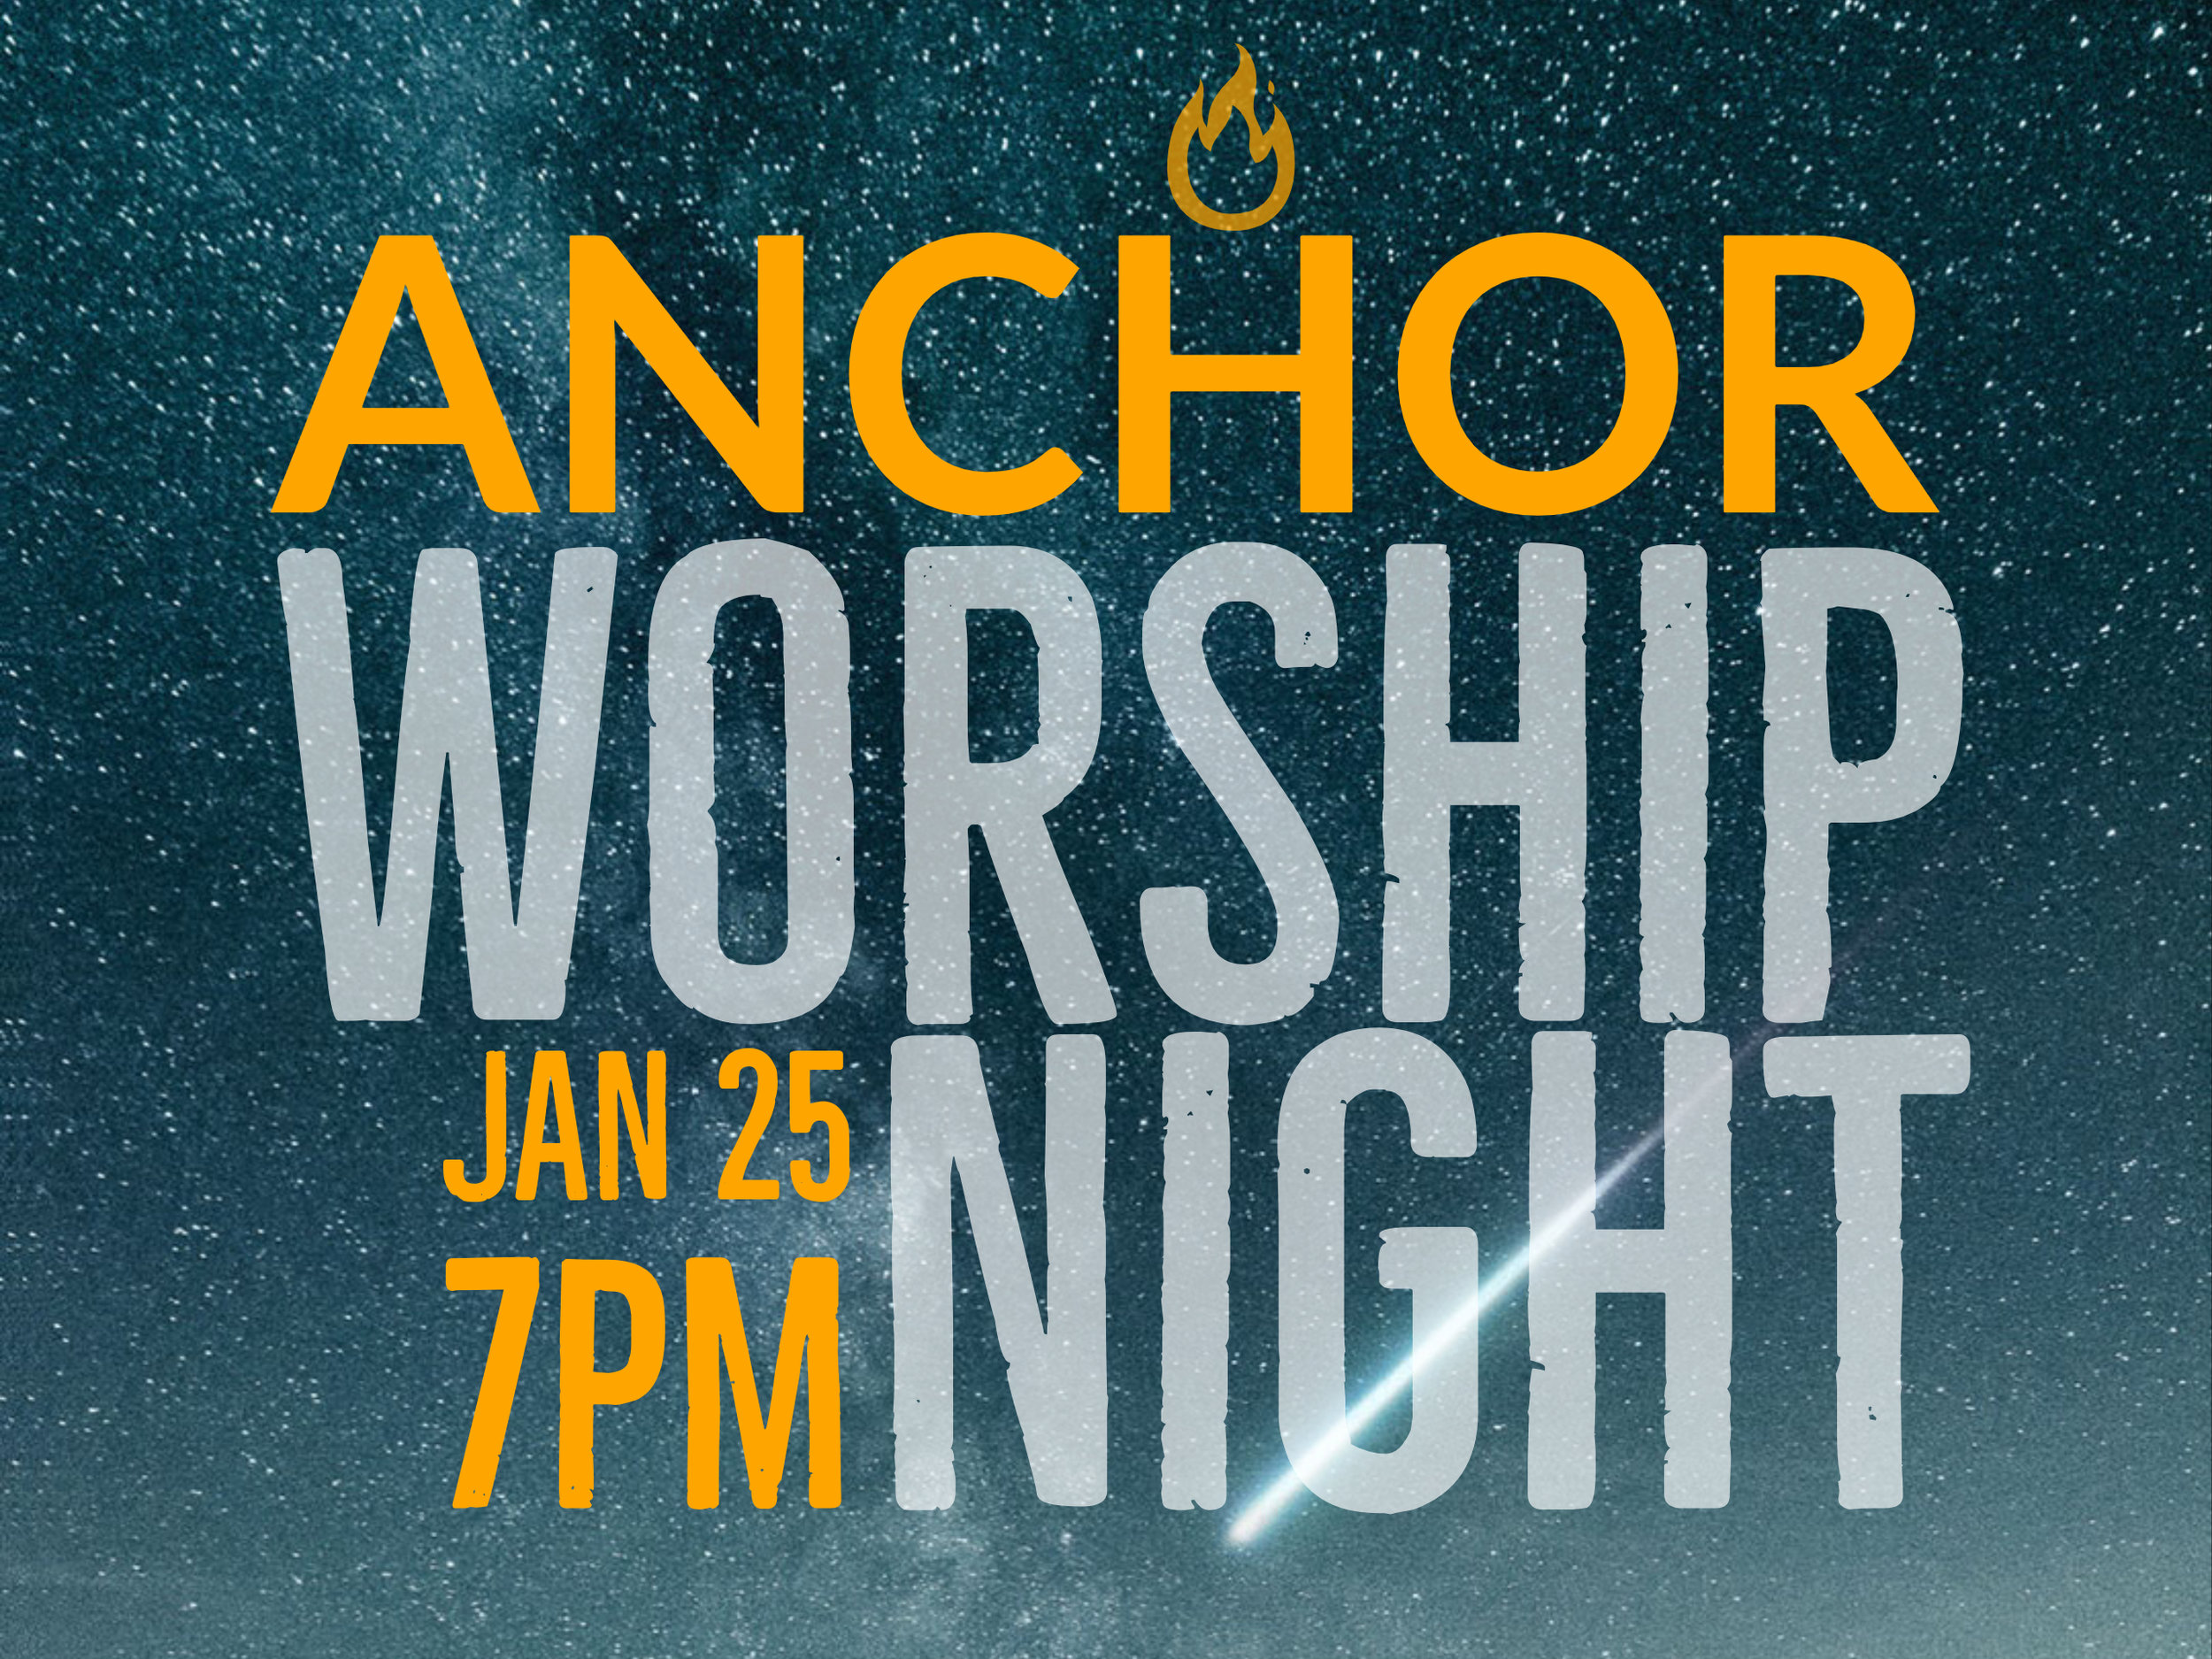 Anchor Worship Night, Friday, January 25th at 7PM